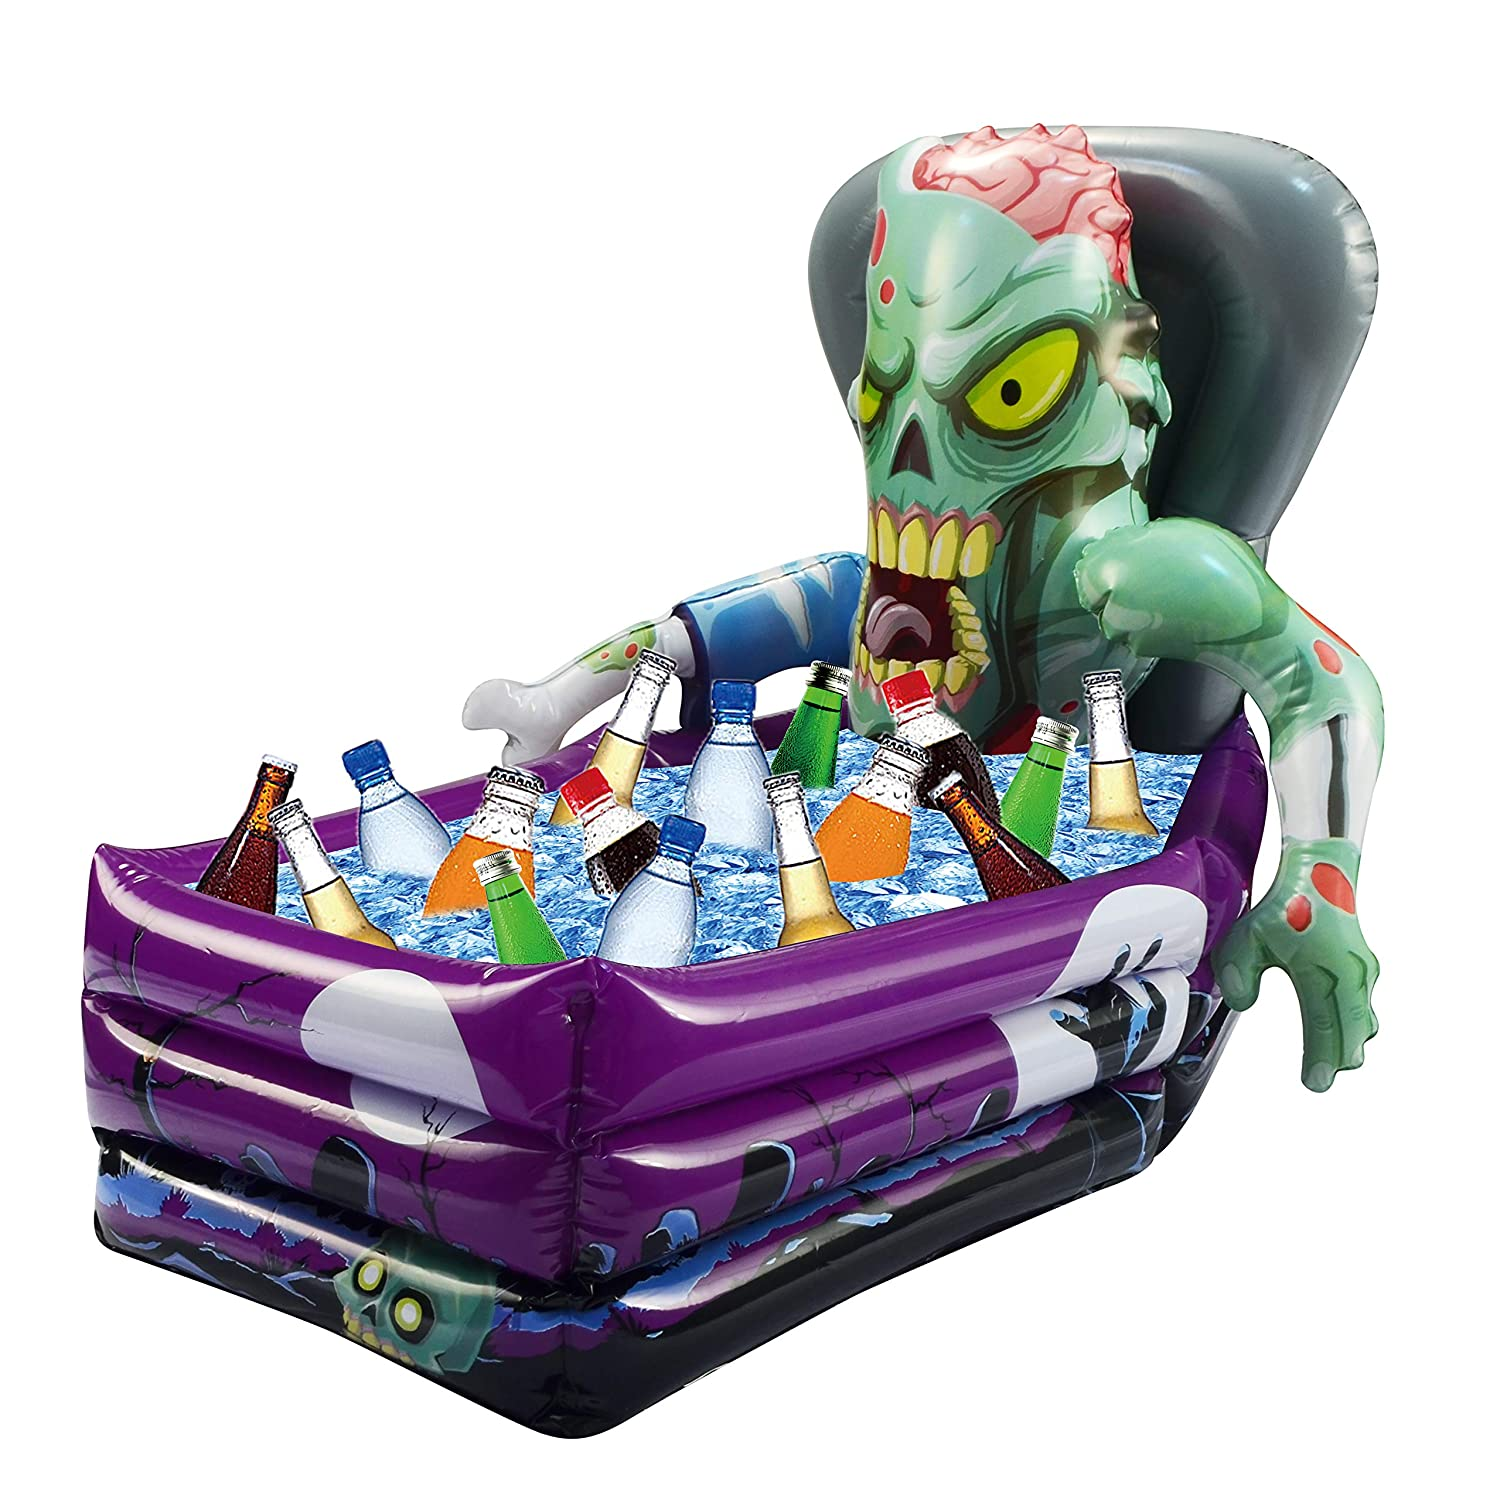 Amazon.com: Halloween fiesta inflable Zombie bebida ...